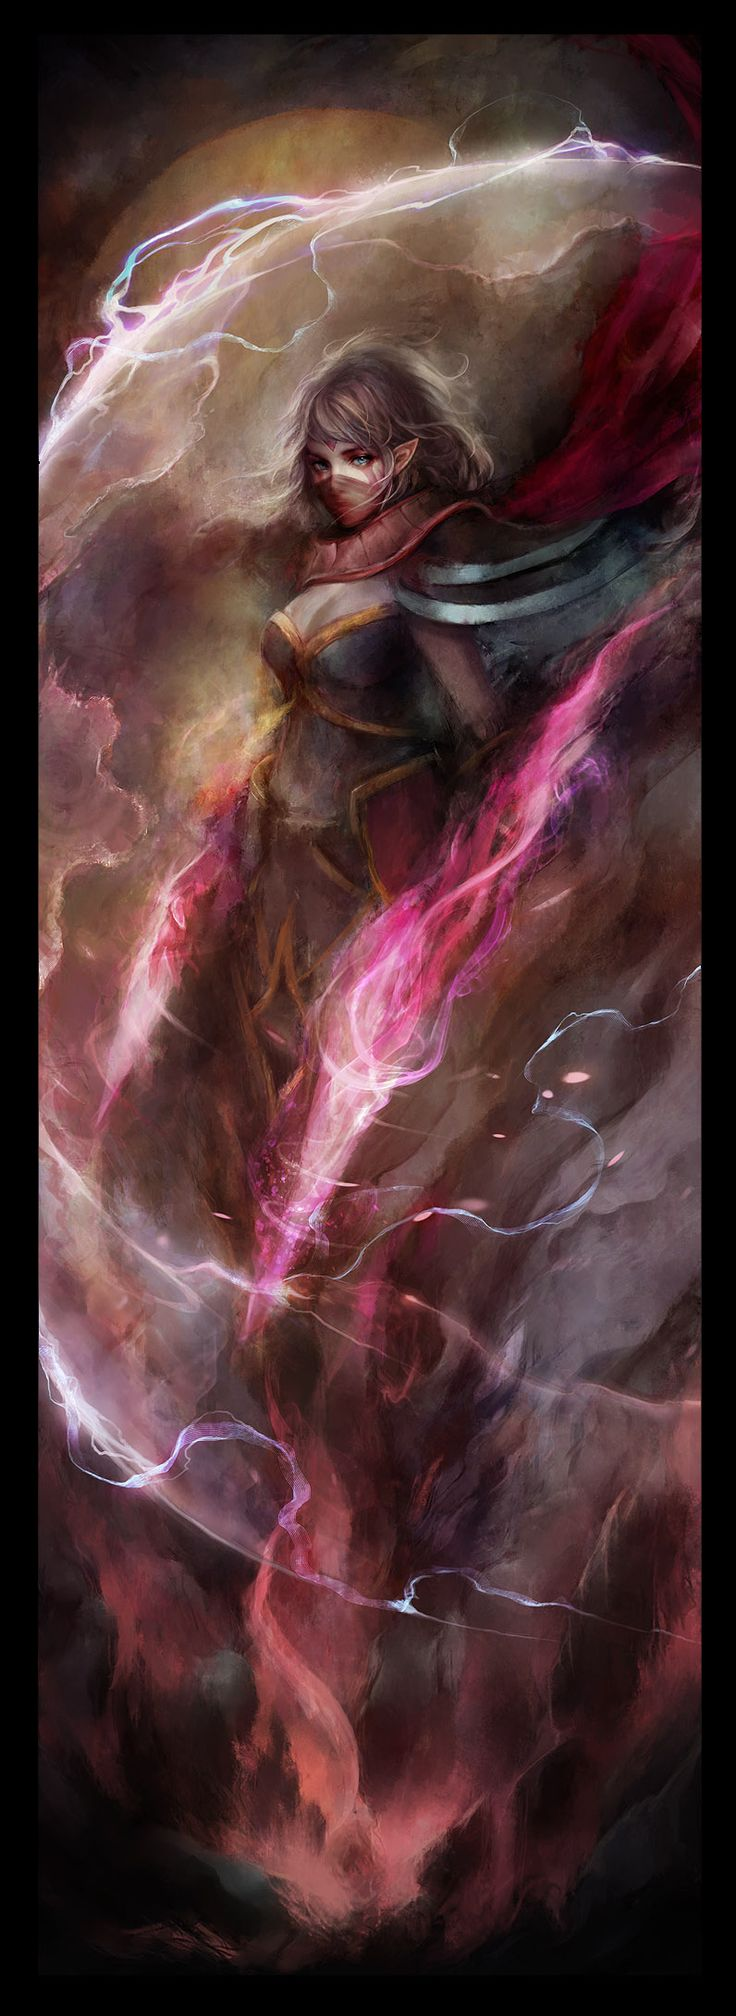 Templar Assassin by muju.deviantart.com on @DeviantArt